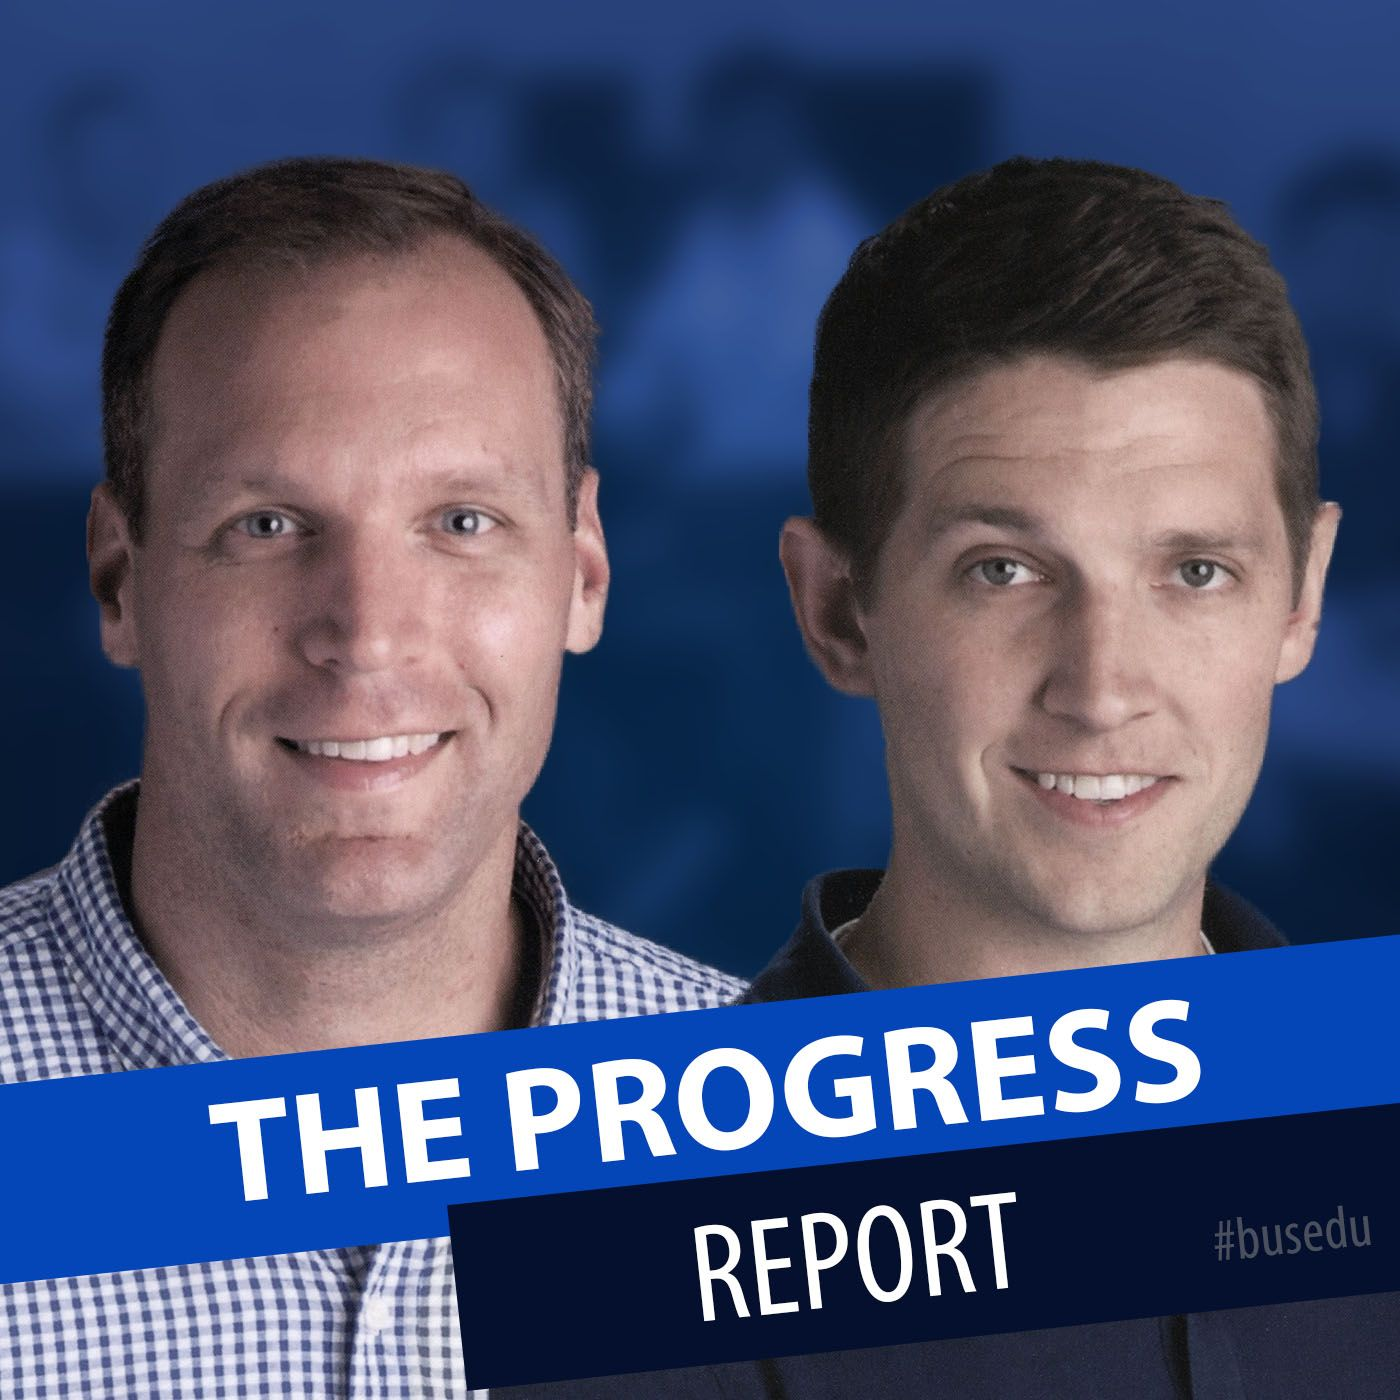 The Progress Report